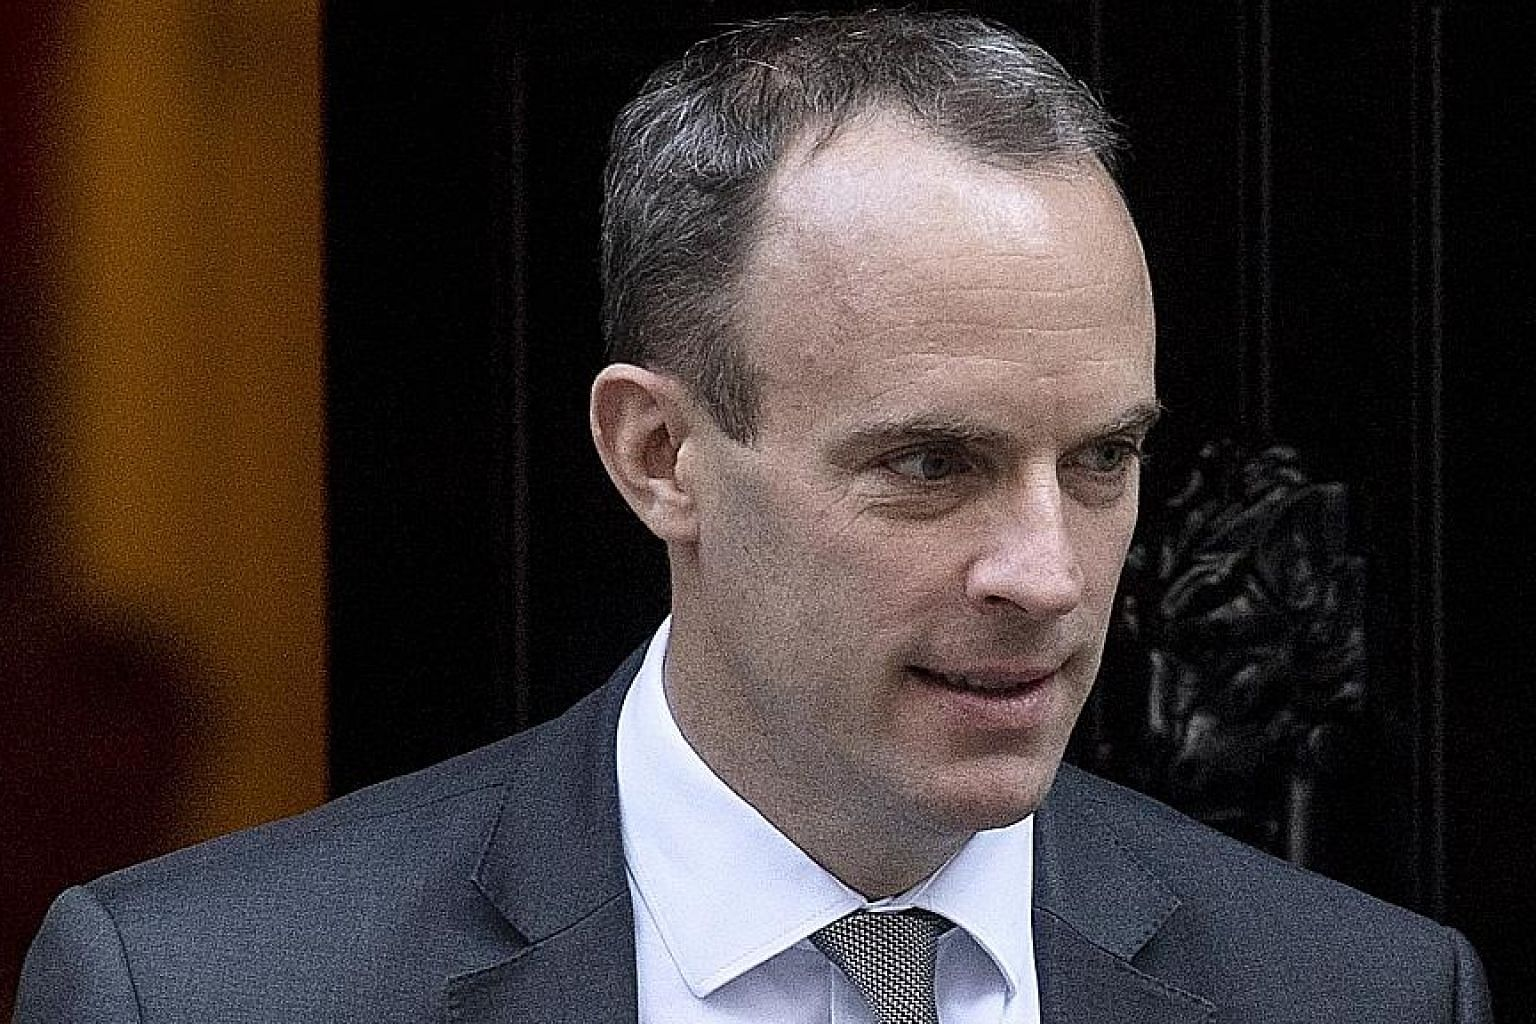 British Brexit Secretary Dominic Raab declined to say when London would publish its updated border plan.